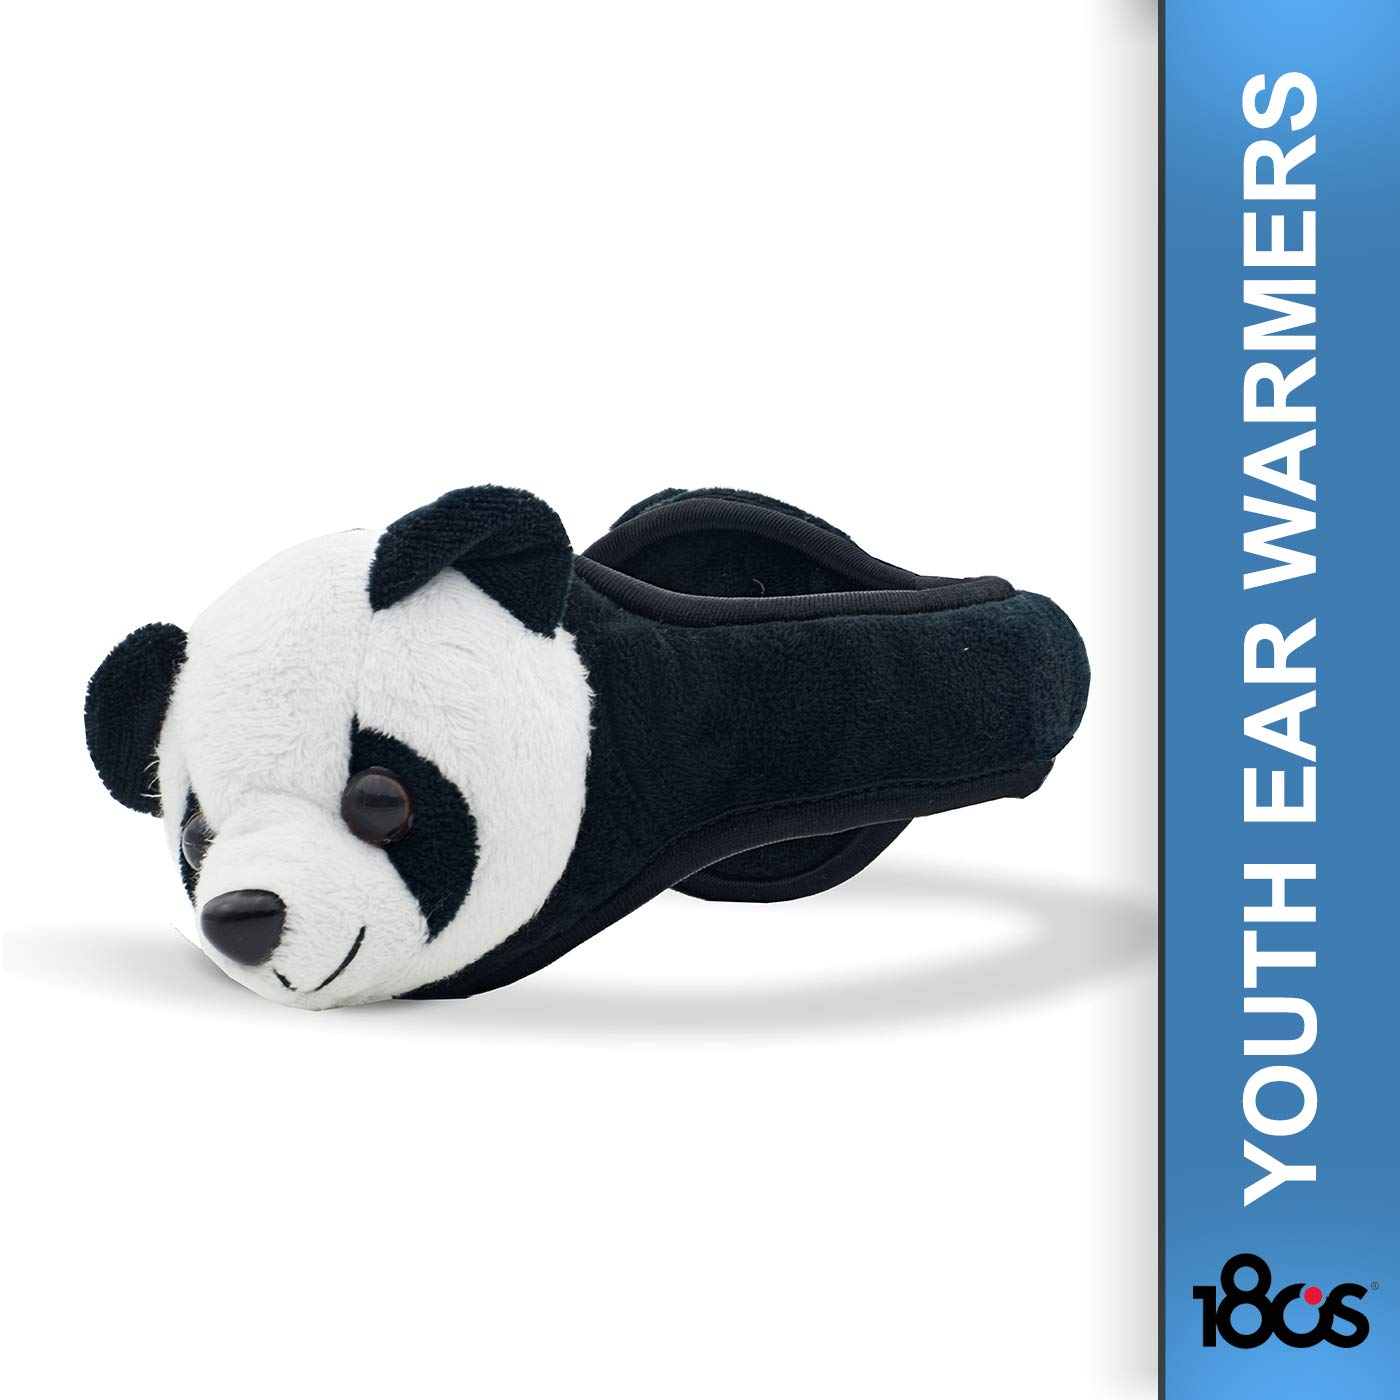 180S Youth and Kids Panda Plush Thermo Insulated Ear Warmers - Adjustable Size, Black/White